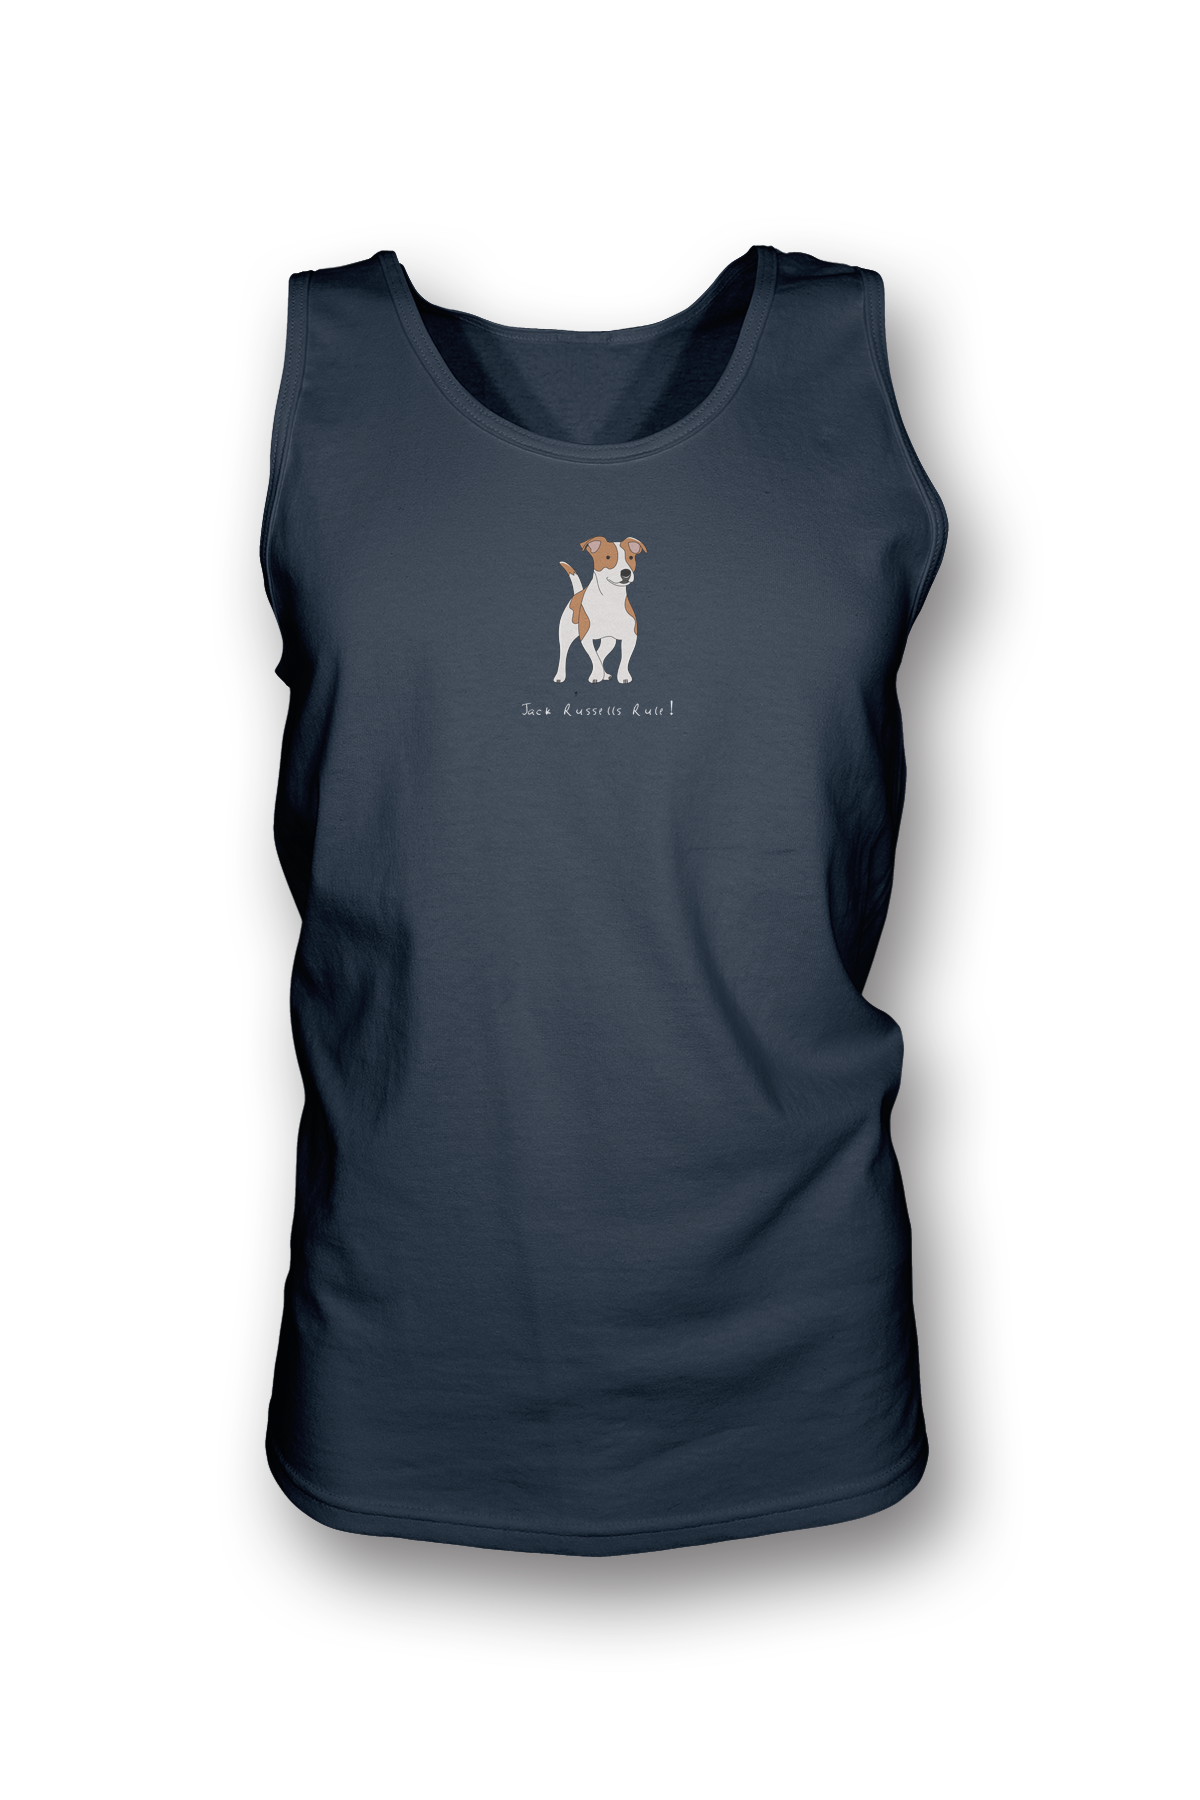 Mens Tank Top T-Shirt - Jack Russells Rule! Navy